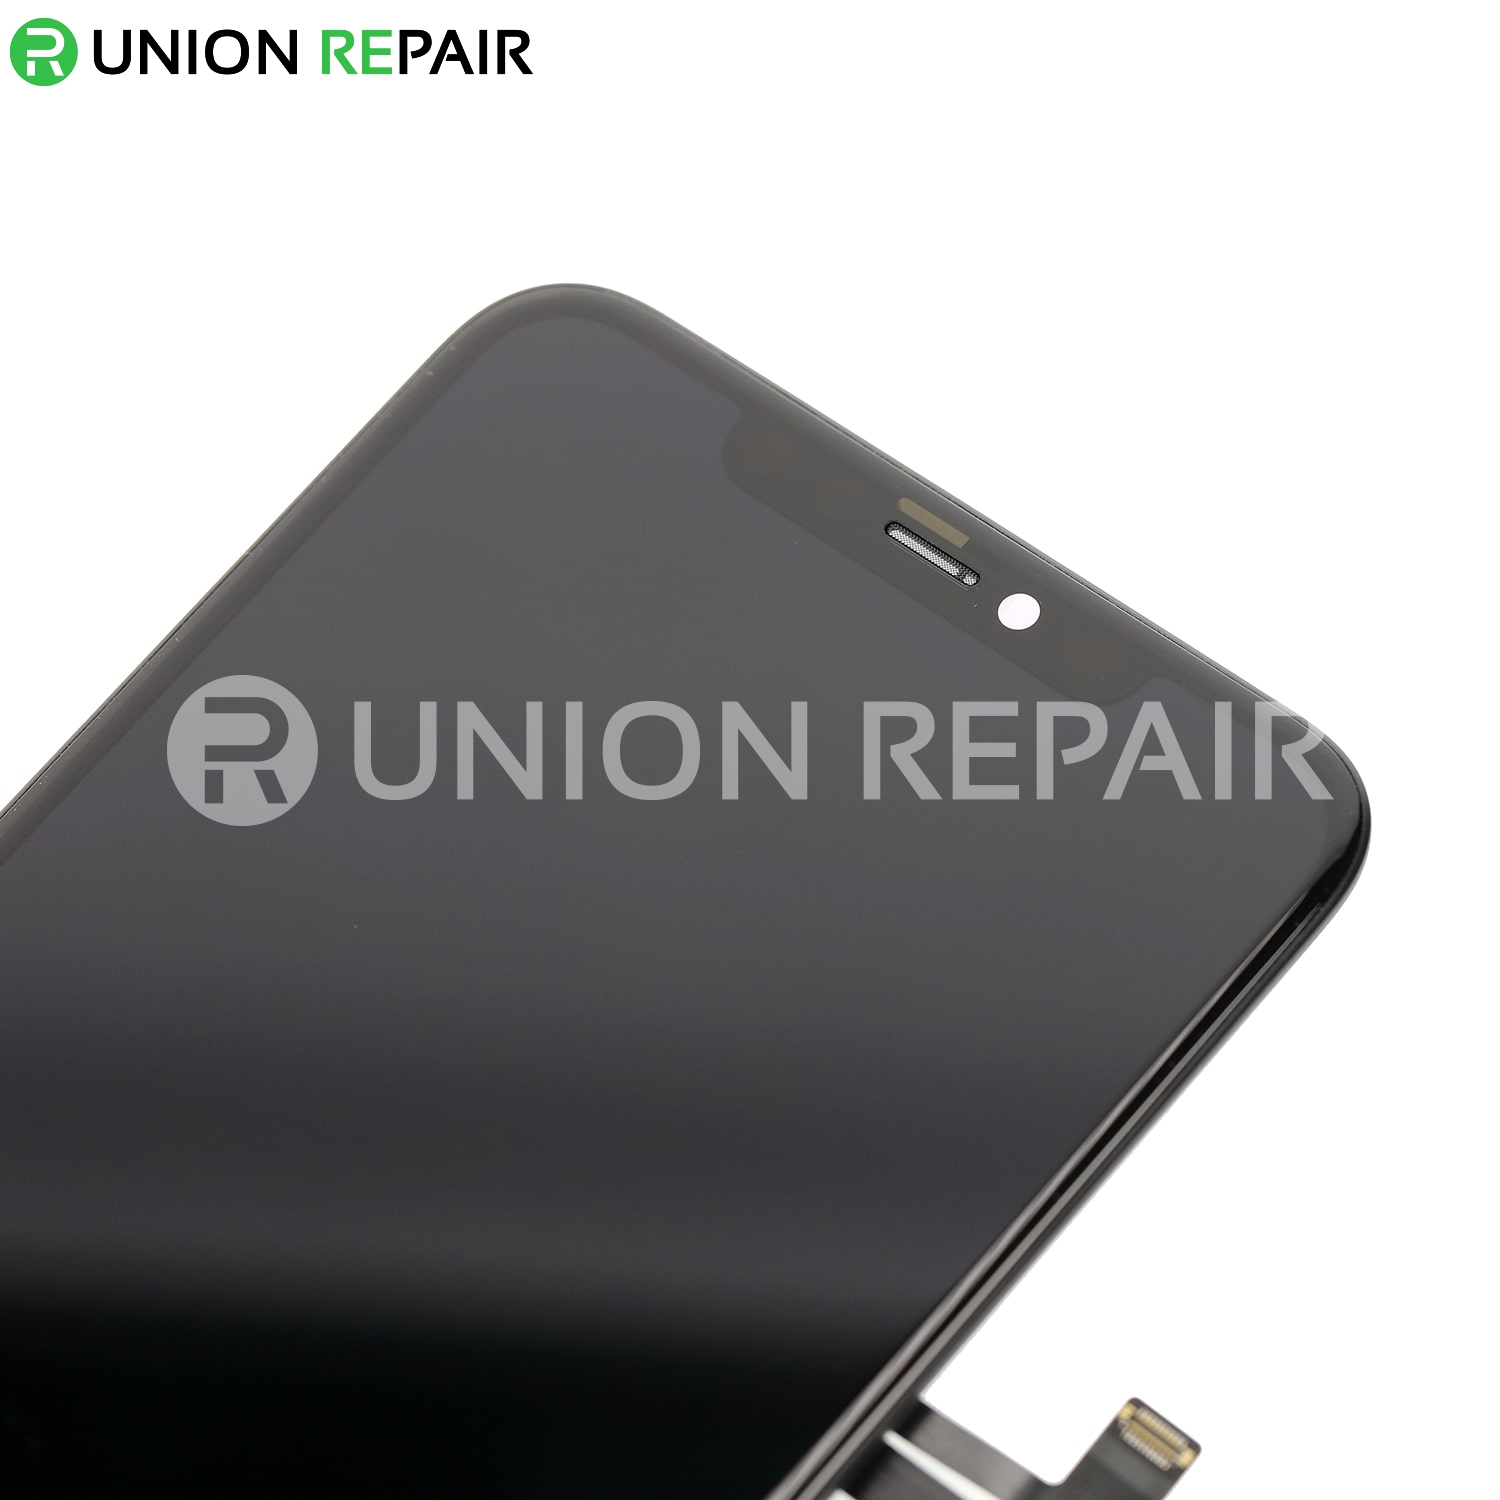 Replacement For iPhone 11 Pro Max OLED Screen Digitizer Assembly - Black